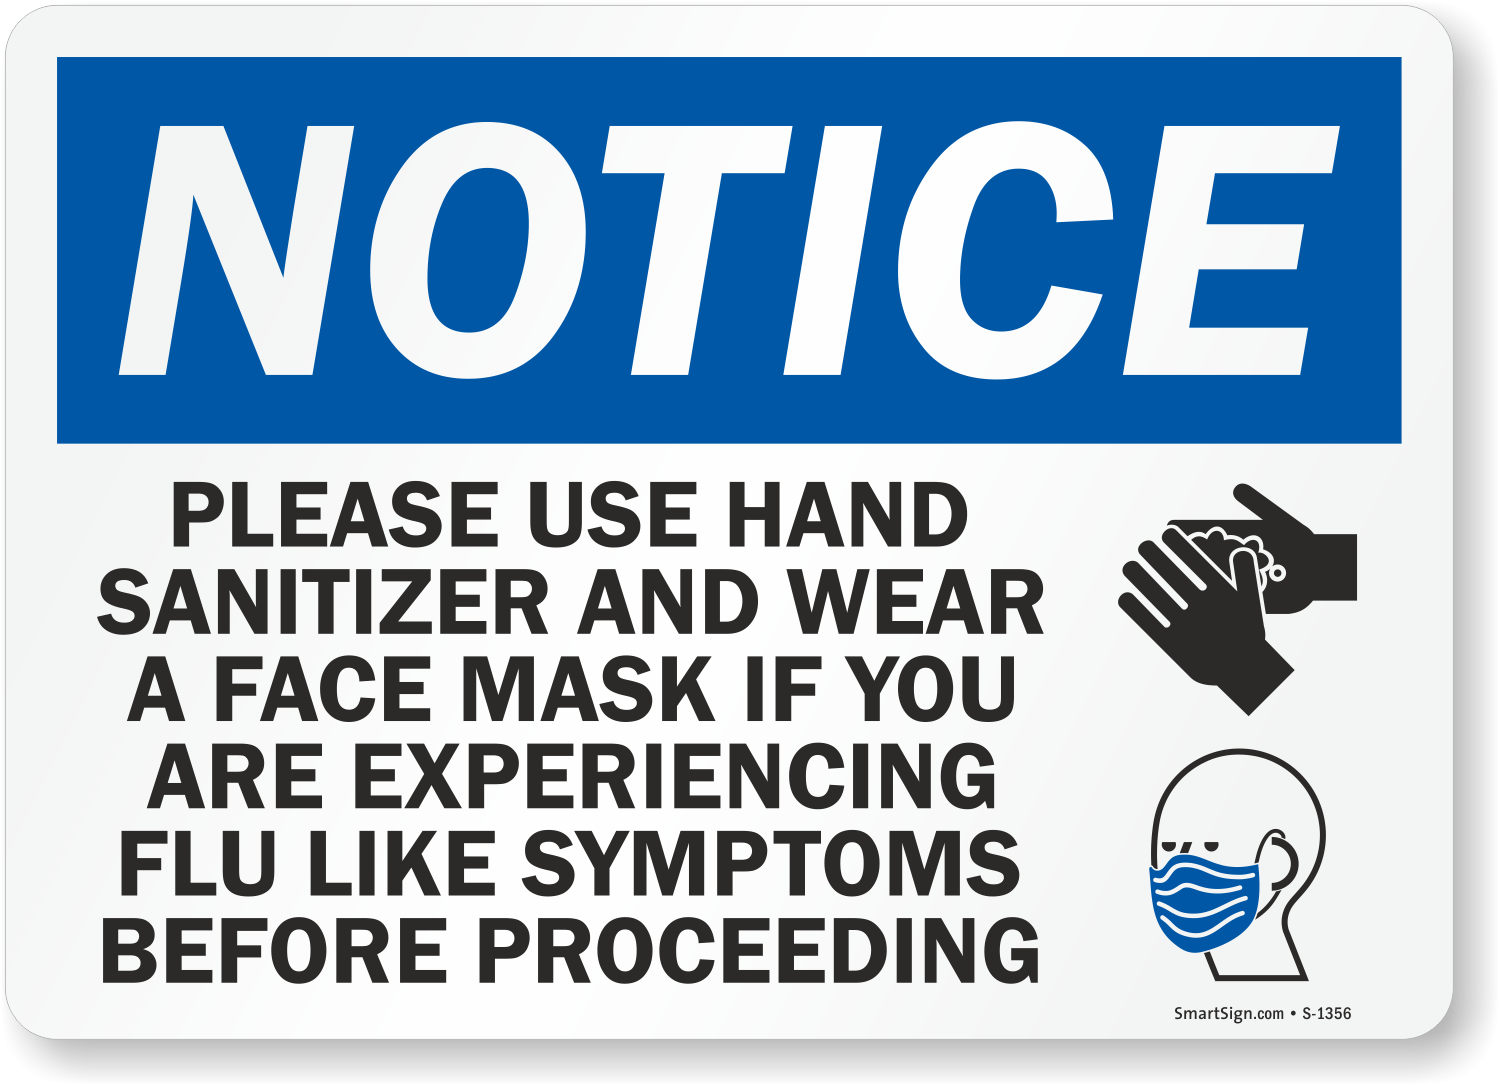 Use Sanitizer And Wear A Face Mask If Experiencing Flu